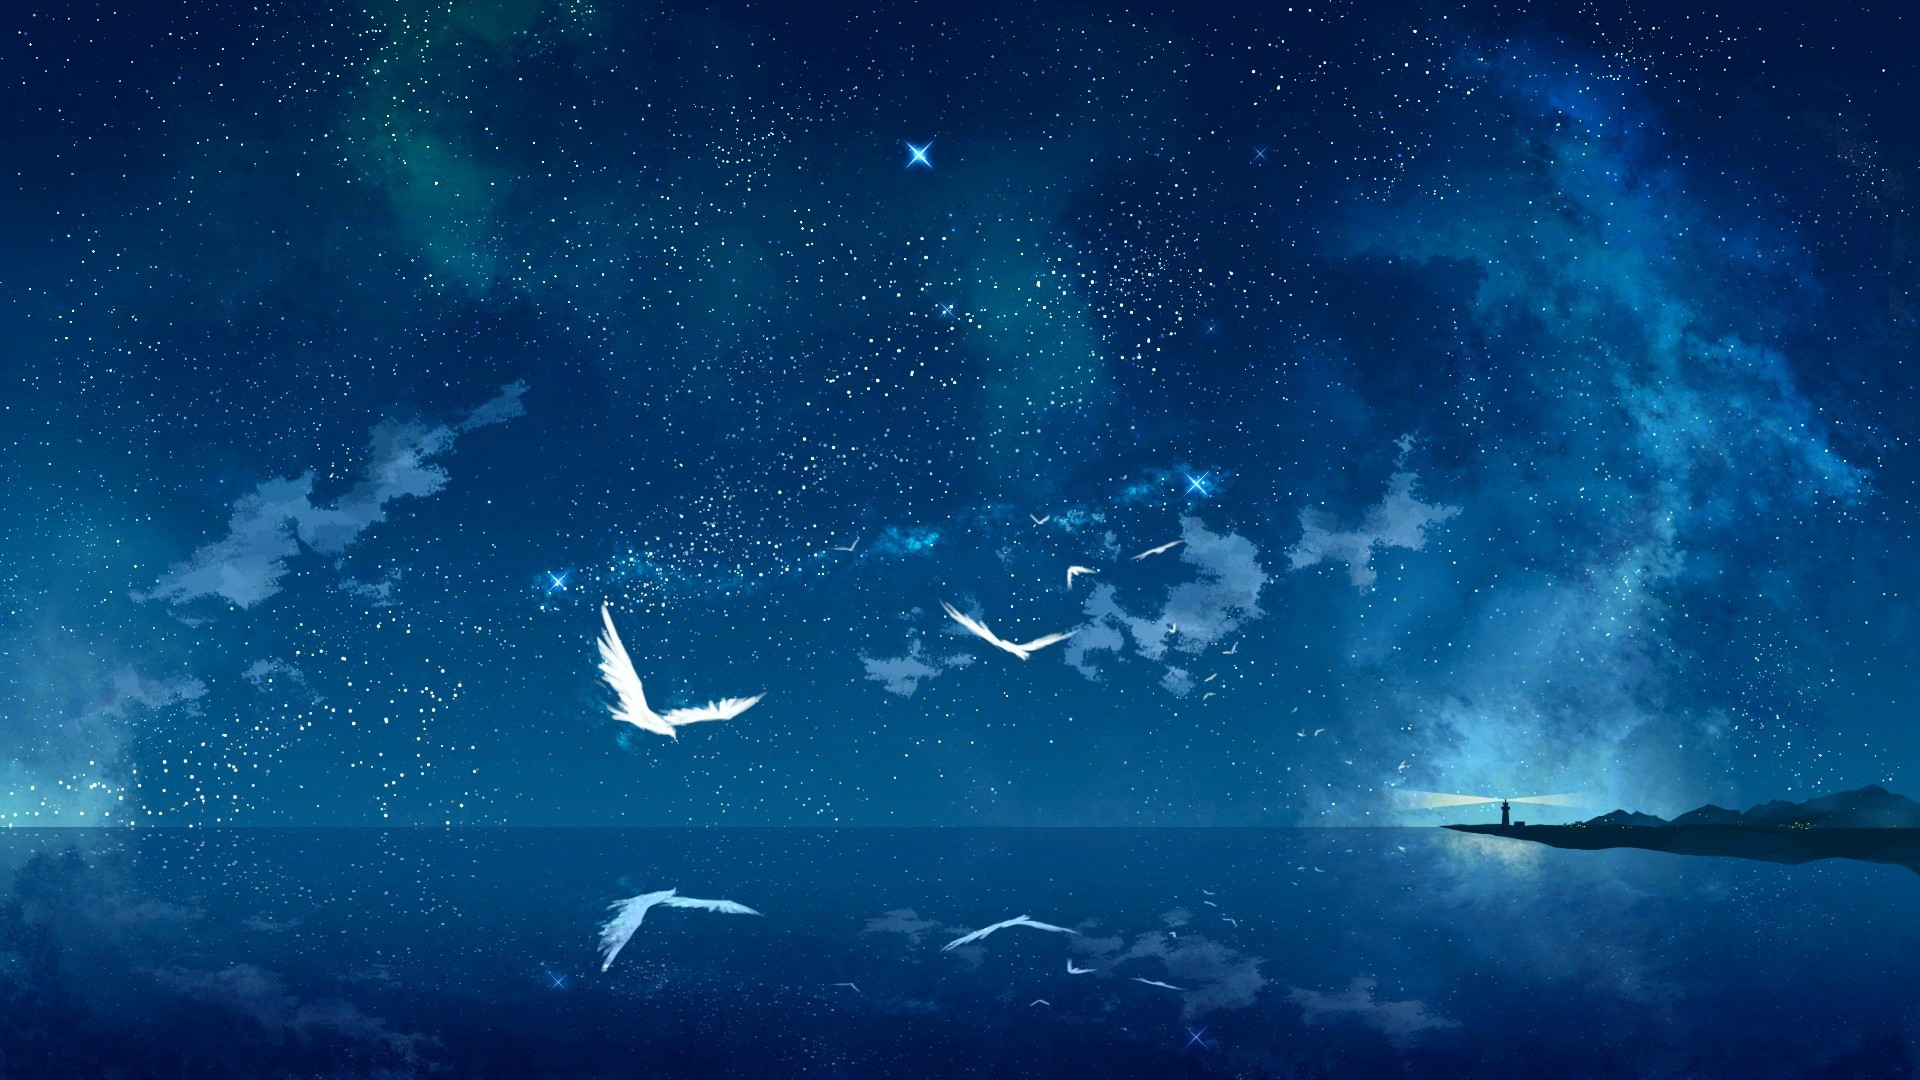 Epic Anime Backgrounds 70 Pictures